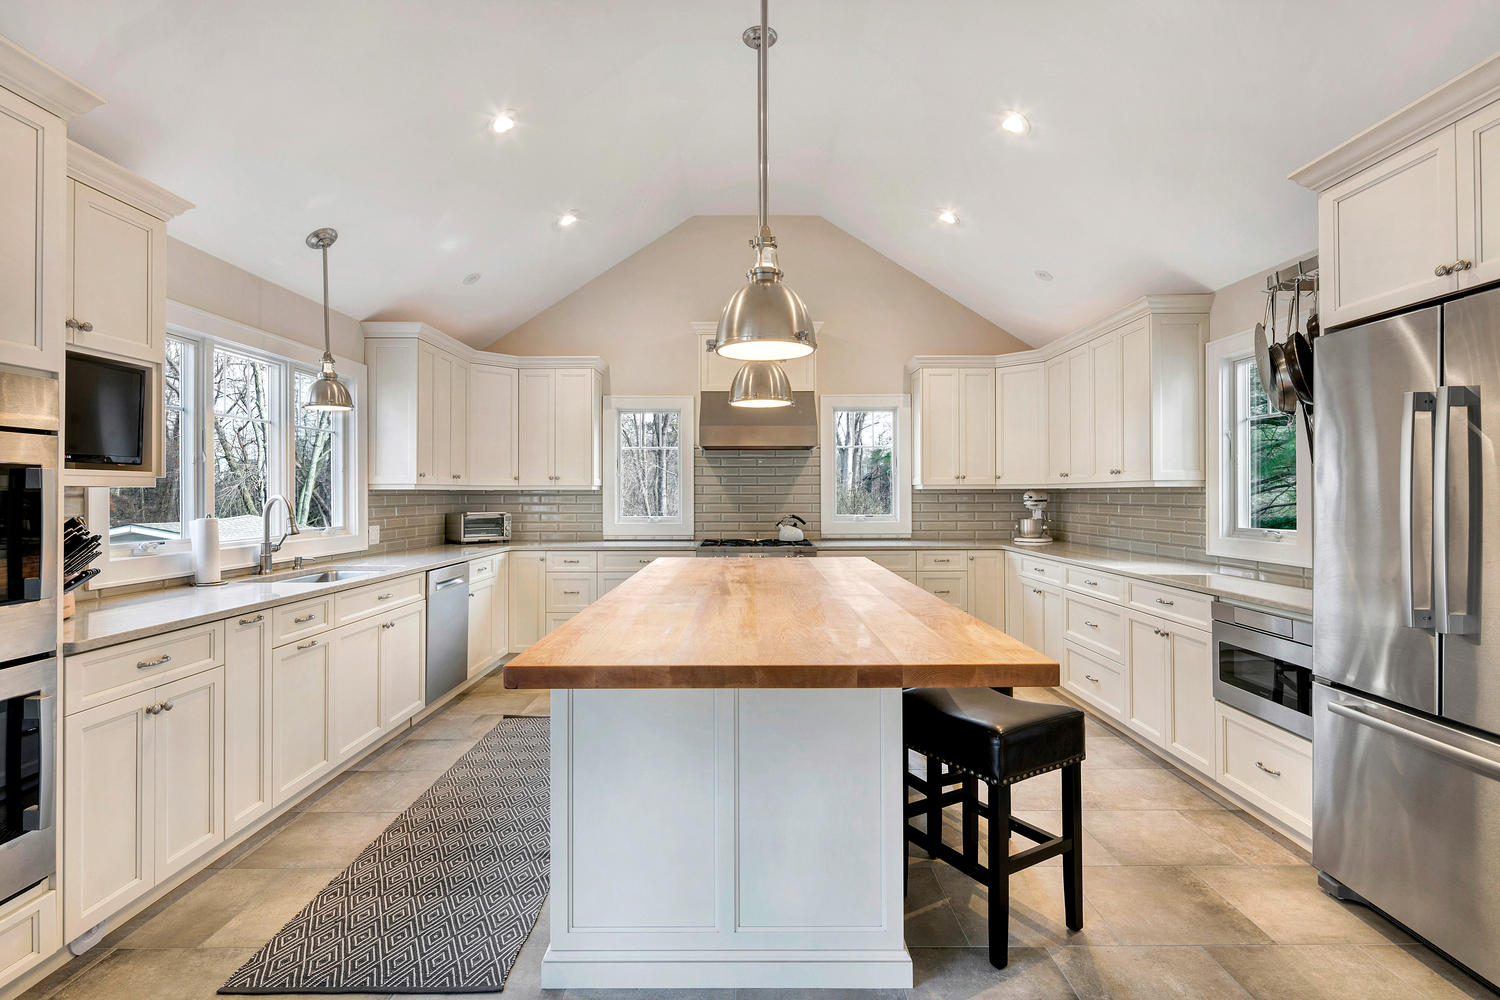 High Ceiling Kitchen Design Pictures